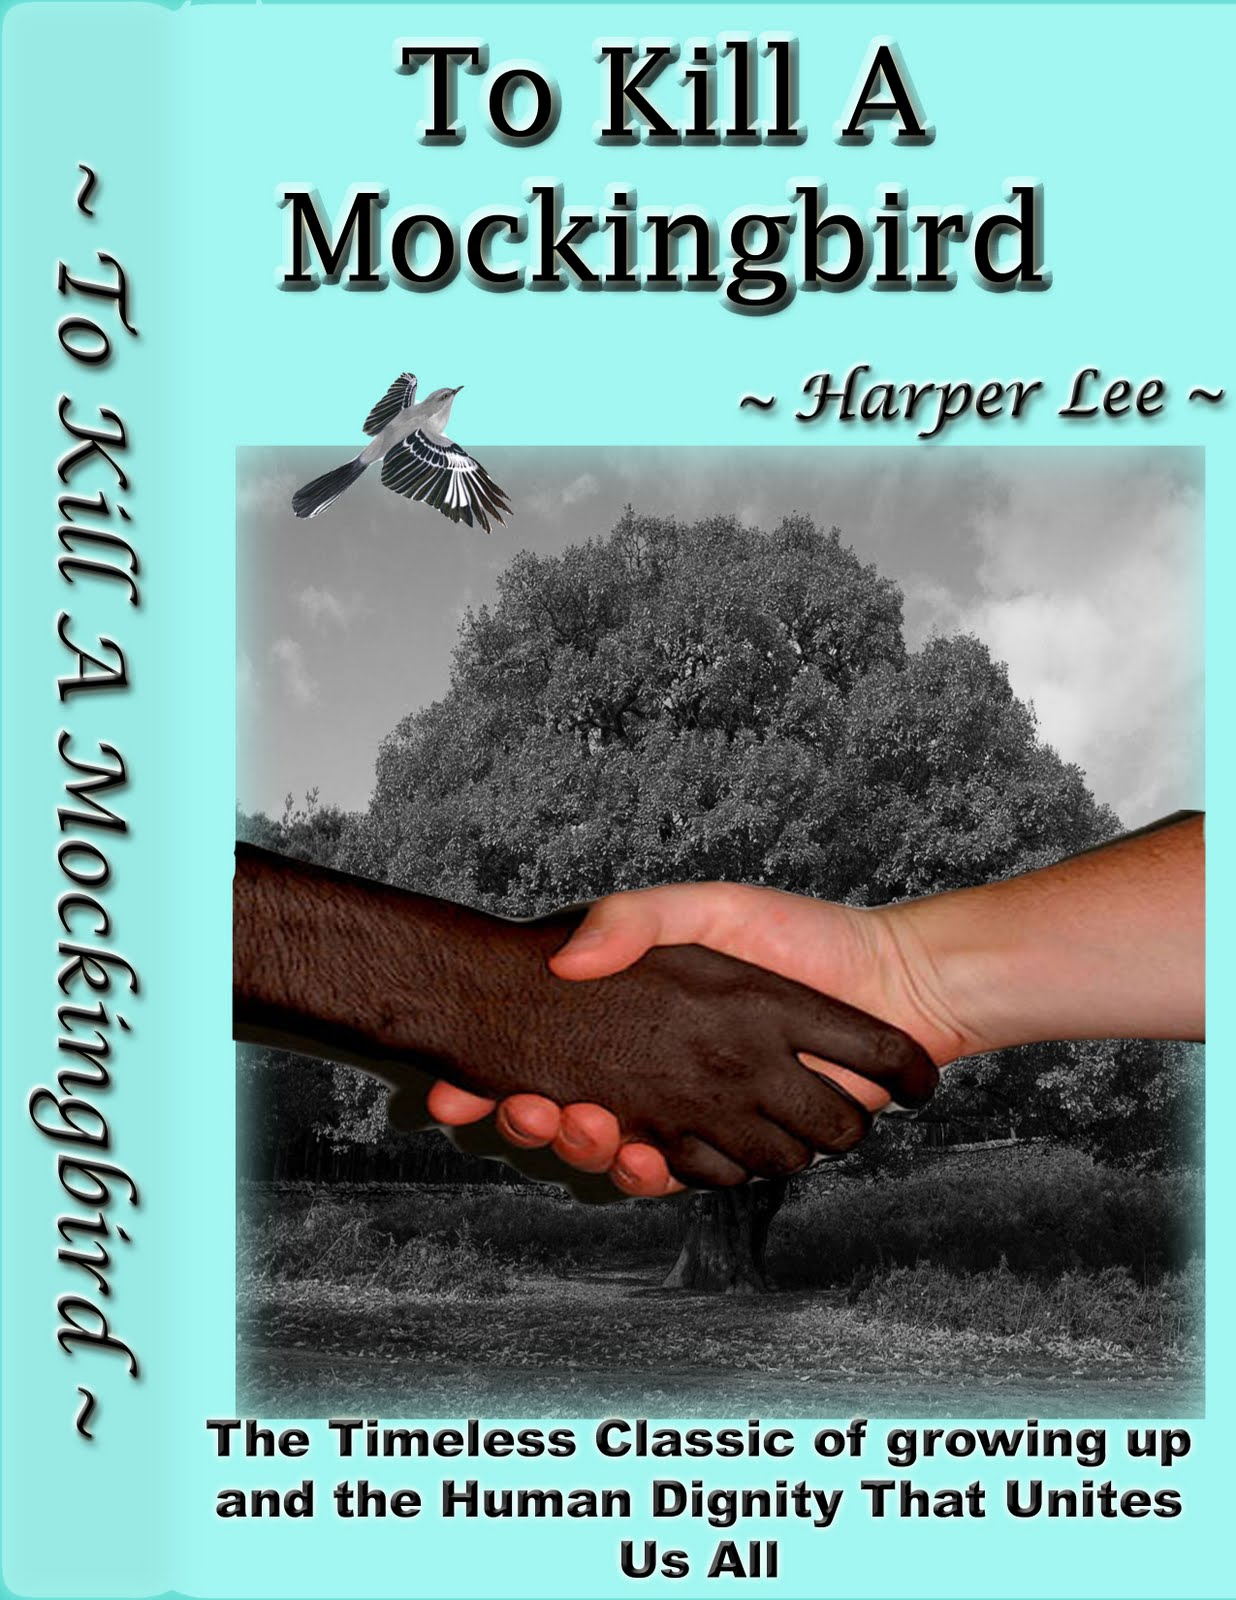 to kill a mockingbird original cover